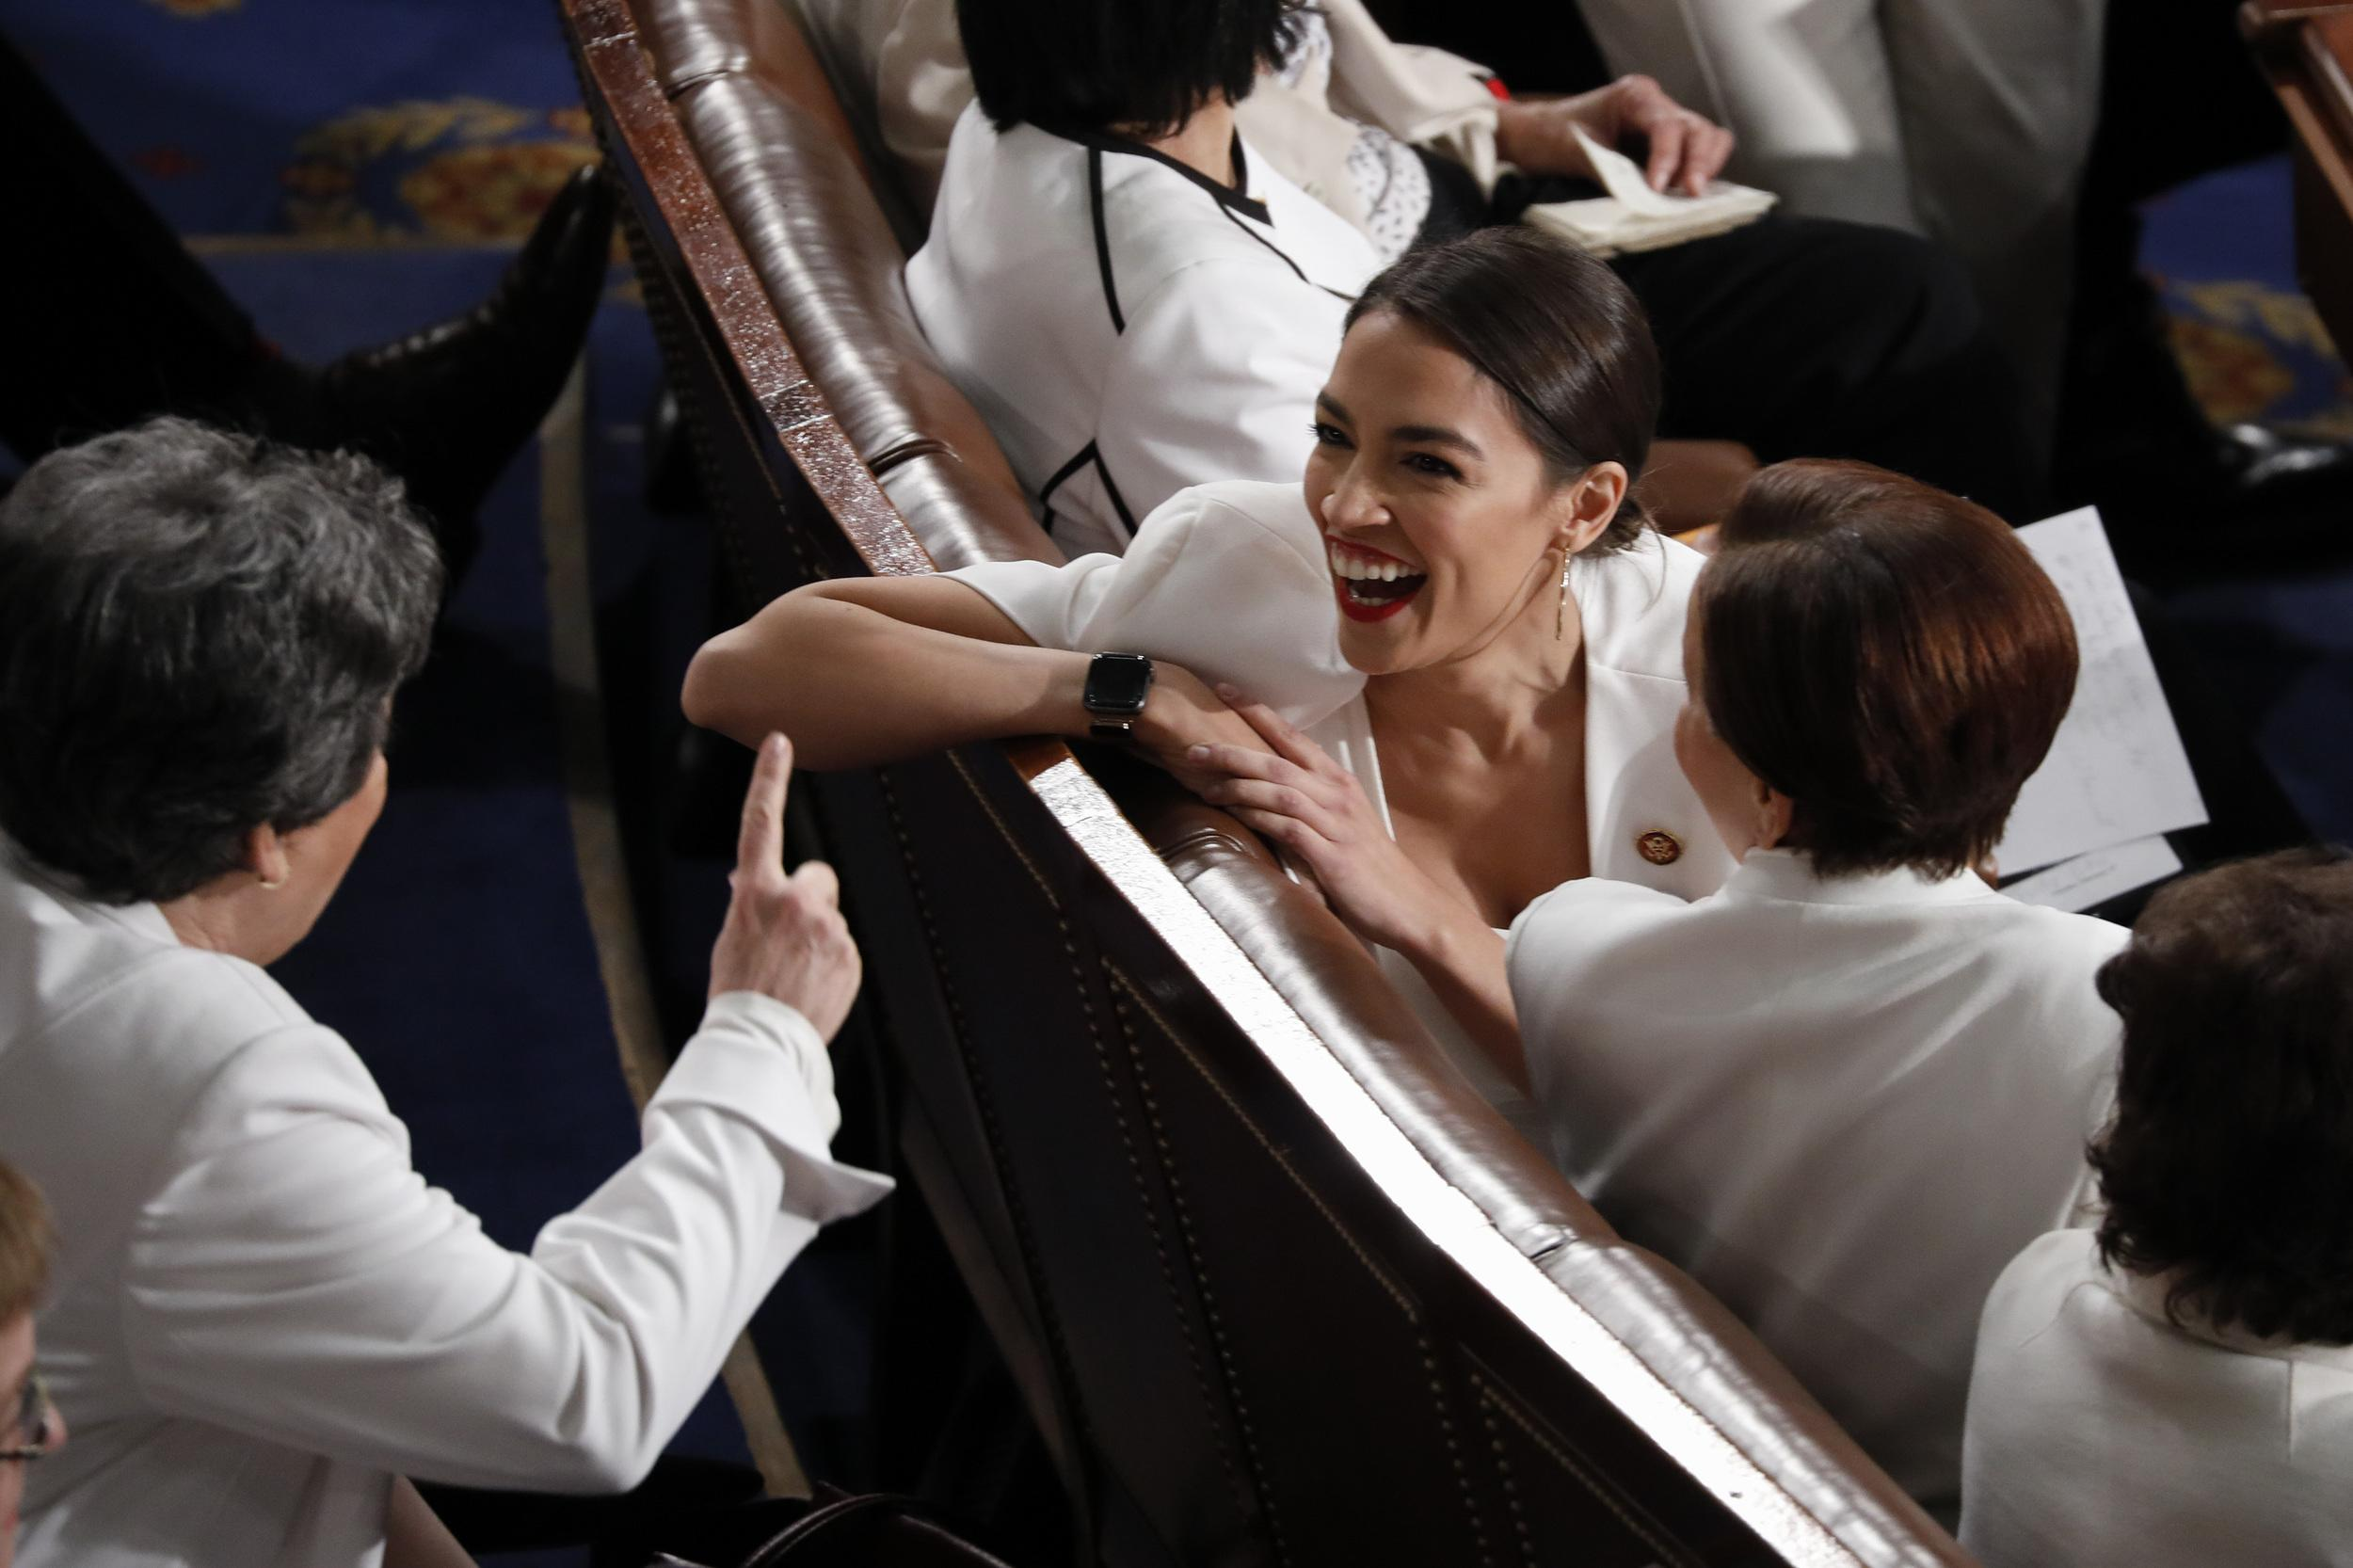 Representative Alexandria Ocasio-Cortez, a Democrat from New York, speaks with colleagues during a State of the Union address by U.S. President Donald Trump, not pictured, to a joint session of Congress at the U.S. Capitol in Washington, D.C., U.S., on Tuesday, Feb. 5, 2019. President Donald Trump cast his fight against illegal migration to the U.S. as a moral struggle, and charged in his second State of the Union address that partisan investigations threaten economic progress under his administration. Photographer: Aaron P. Bernstein/Bloomberg via Getty Images